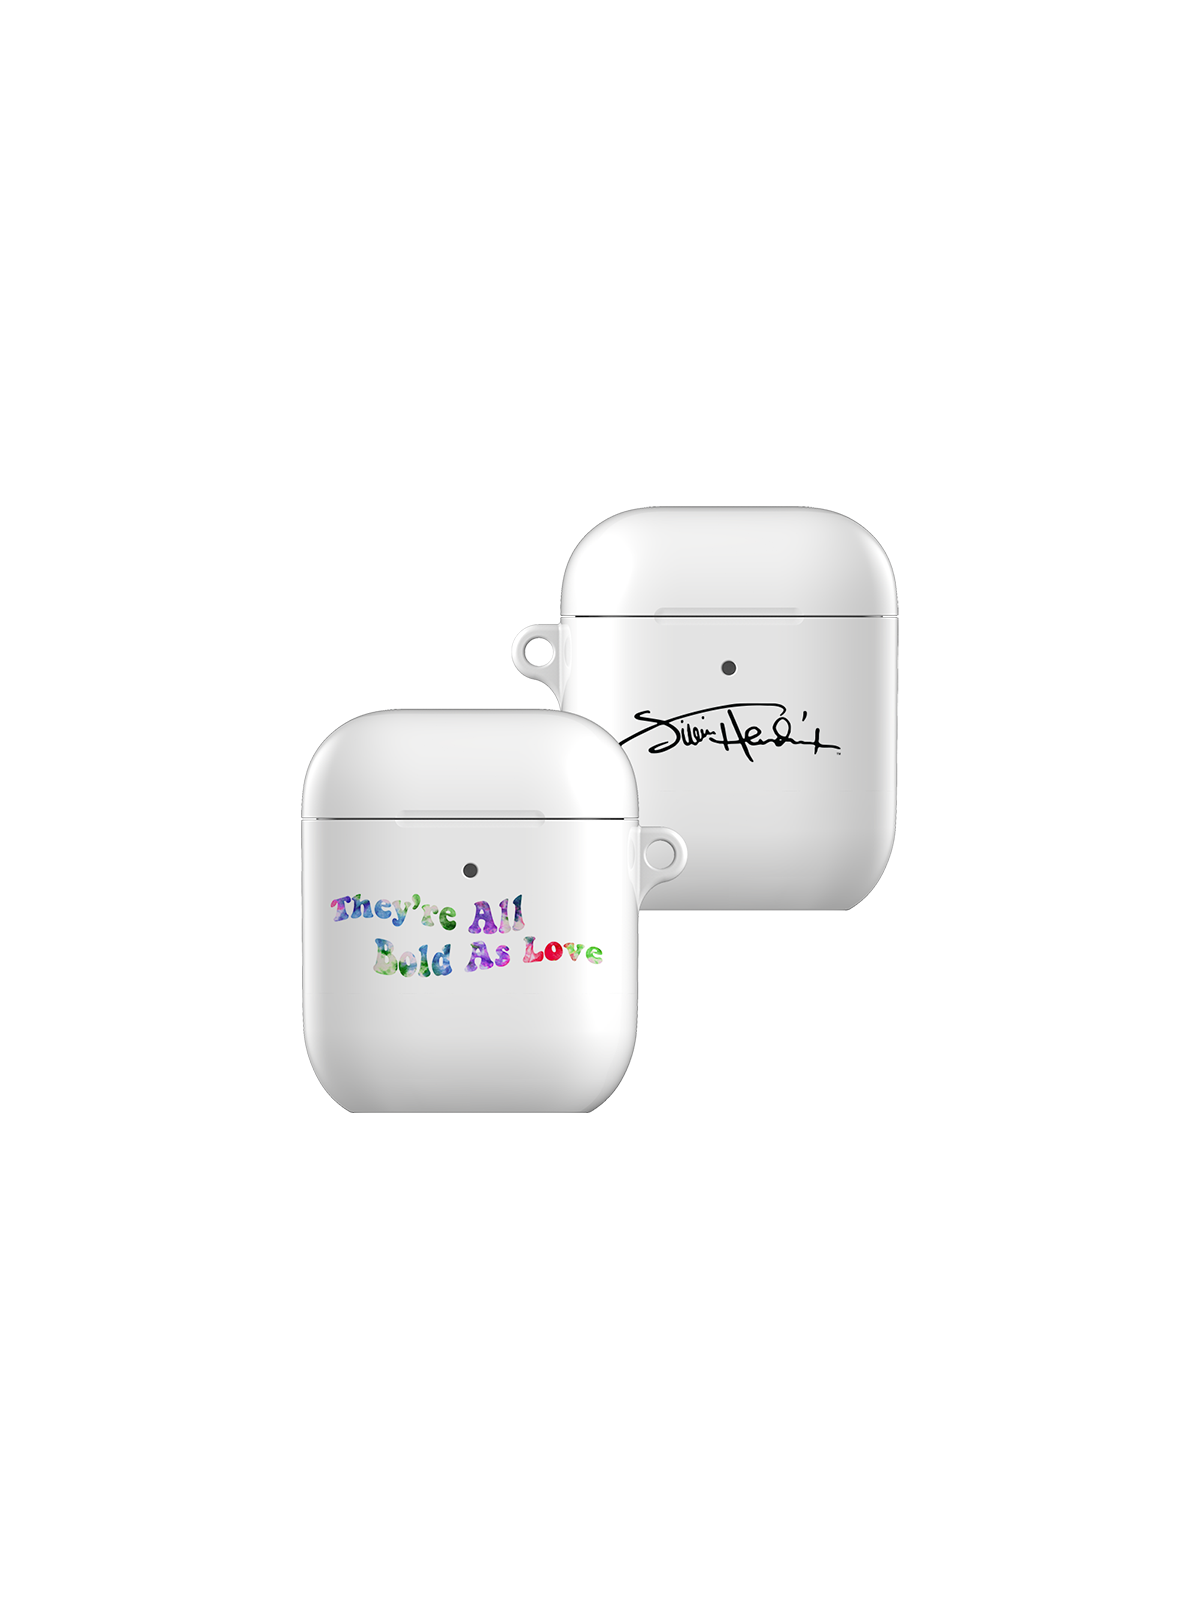 Bold as Love White AirPods Case